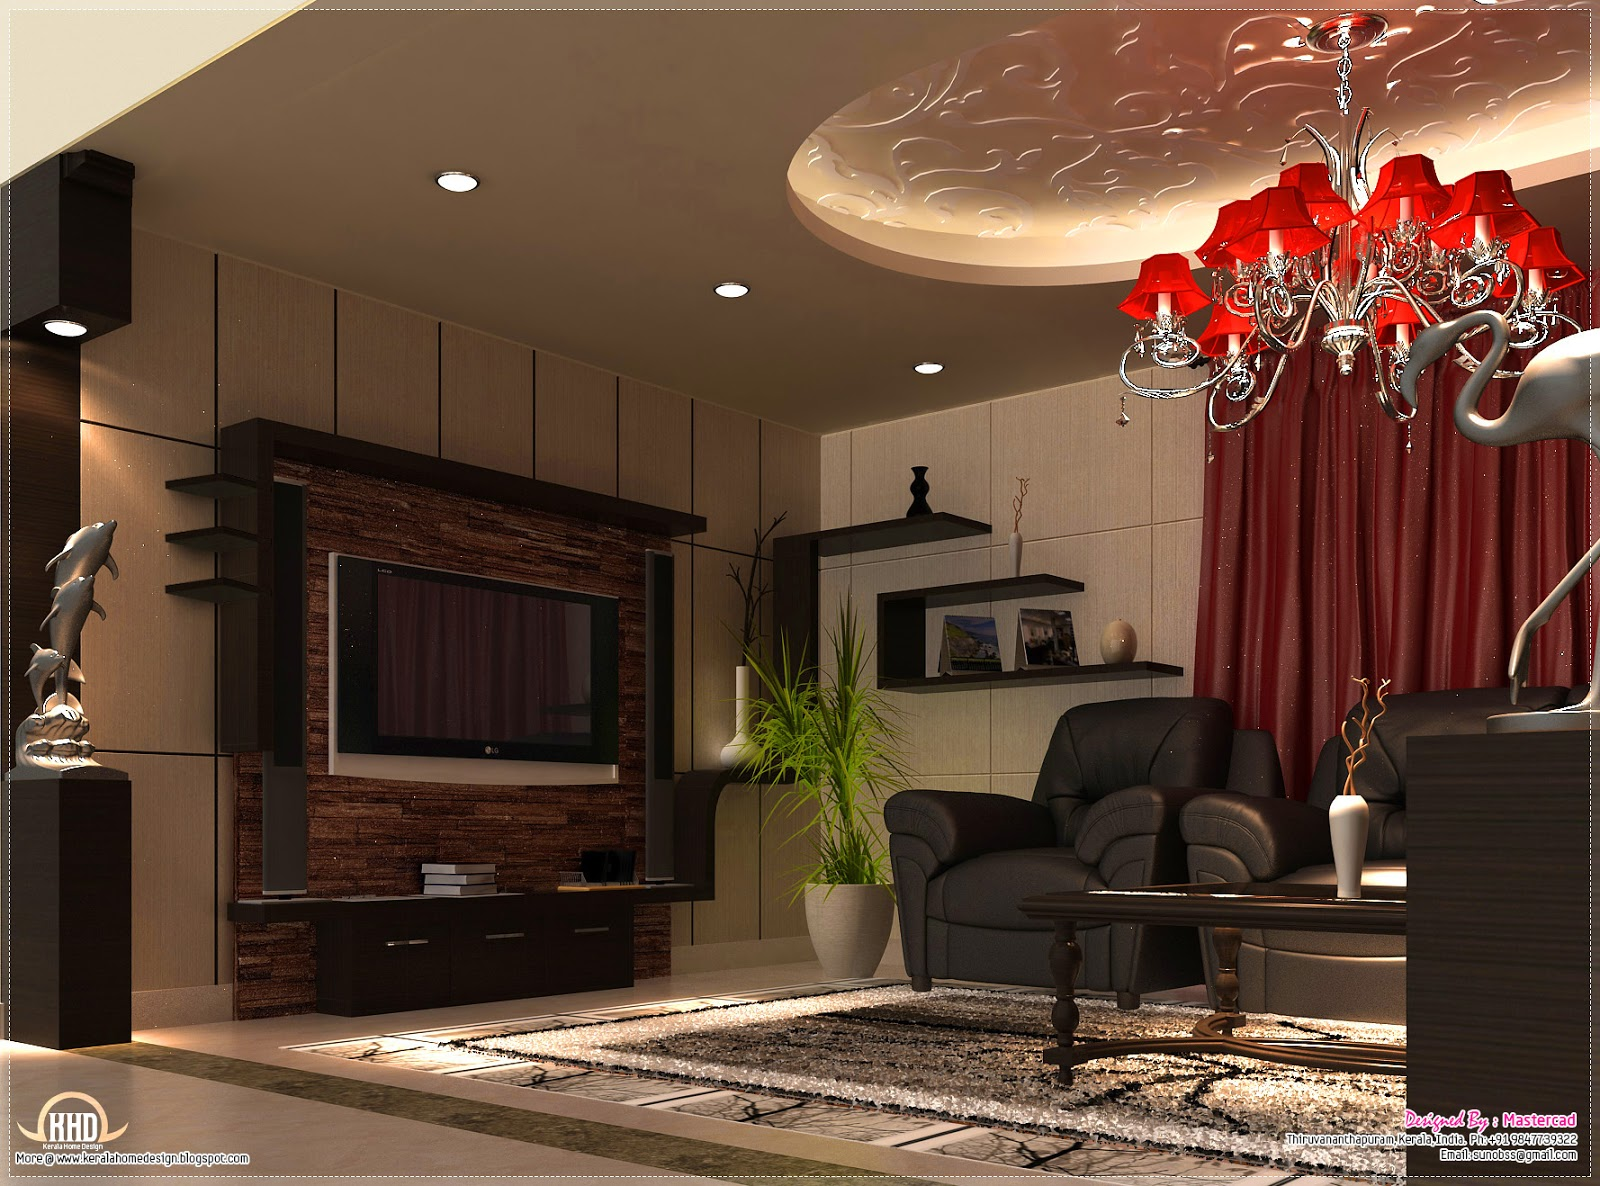 Interior design ideas kerala home design and floor plans for Home designers in my area